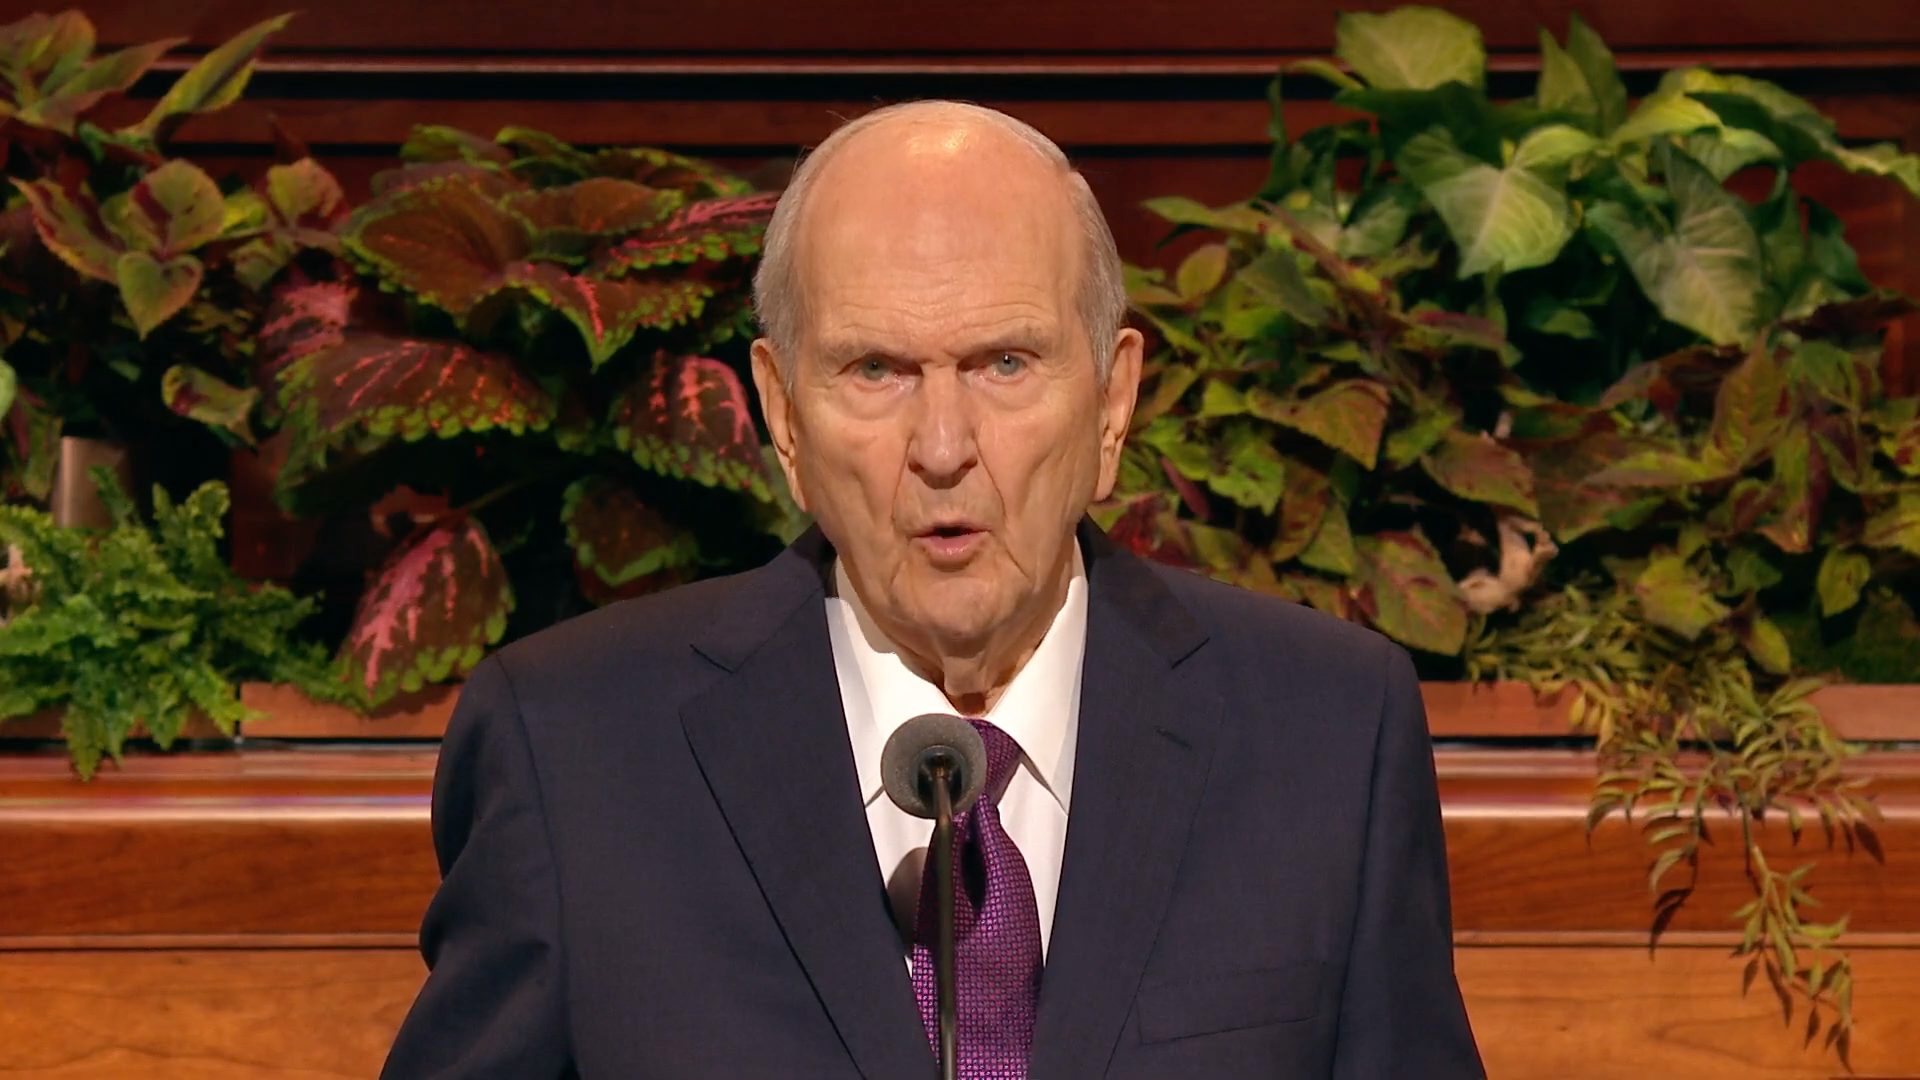 President Russell M. Nelson, president of the Church, speaks during the Saturday afternoon session in the 189th Semiannual General Conference of the Church on Oct. 5, 2019.